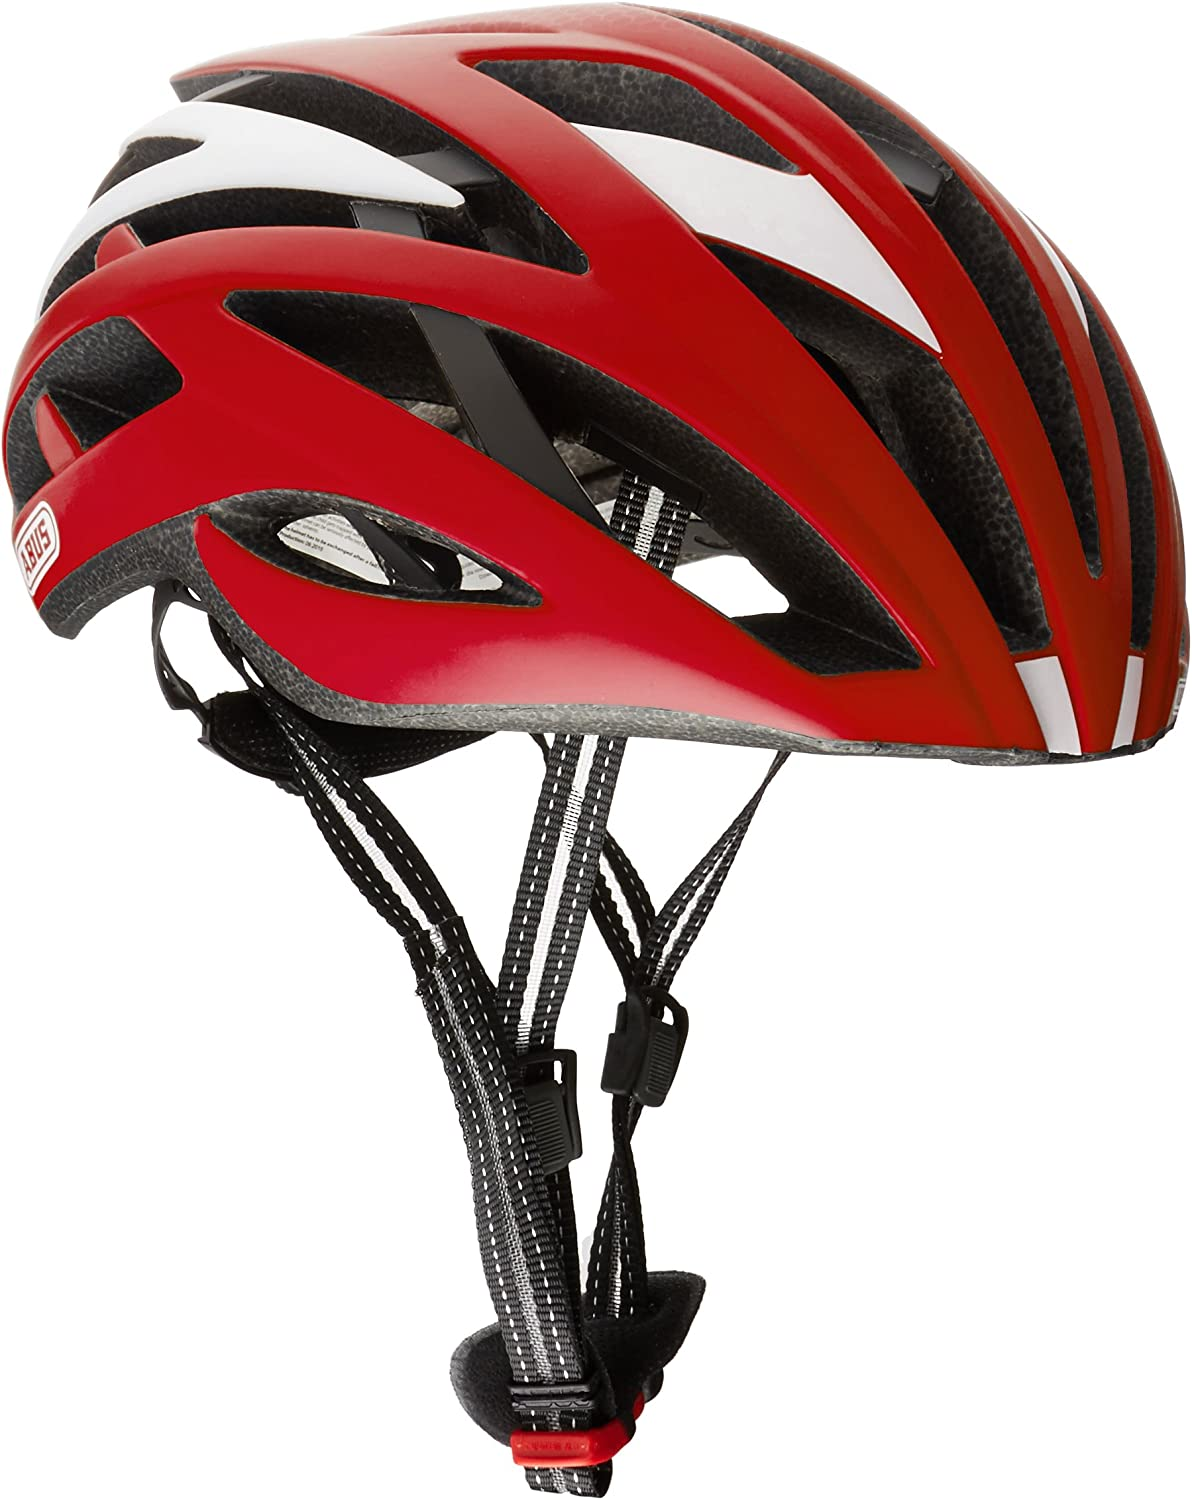 Abus TecTical Pro 2.0 Red Helmet 2017